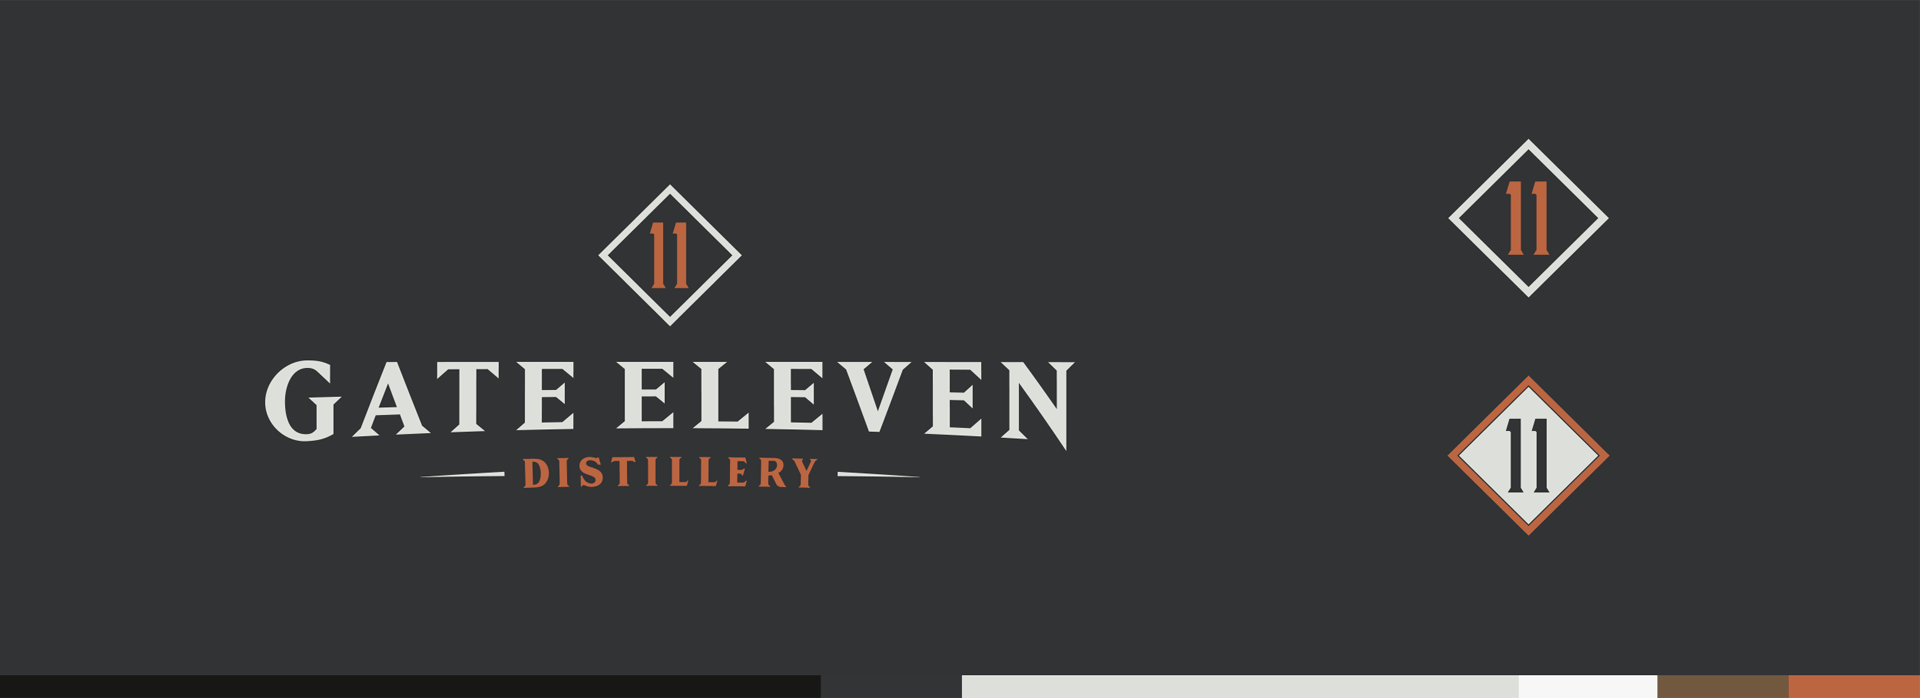 Gate 11 Distillery - Branding, Identity Design, Logos, Color Palettes